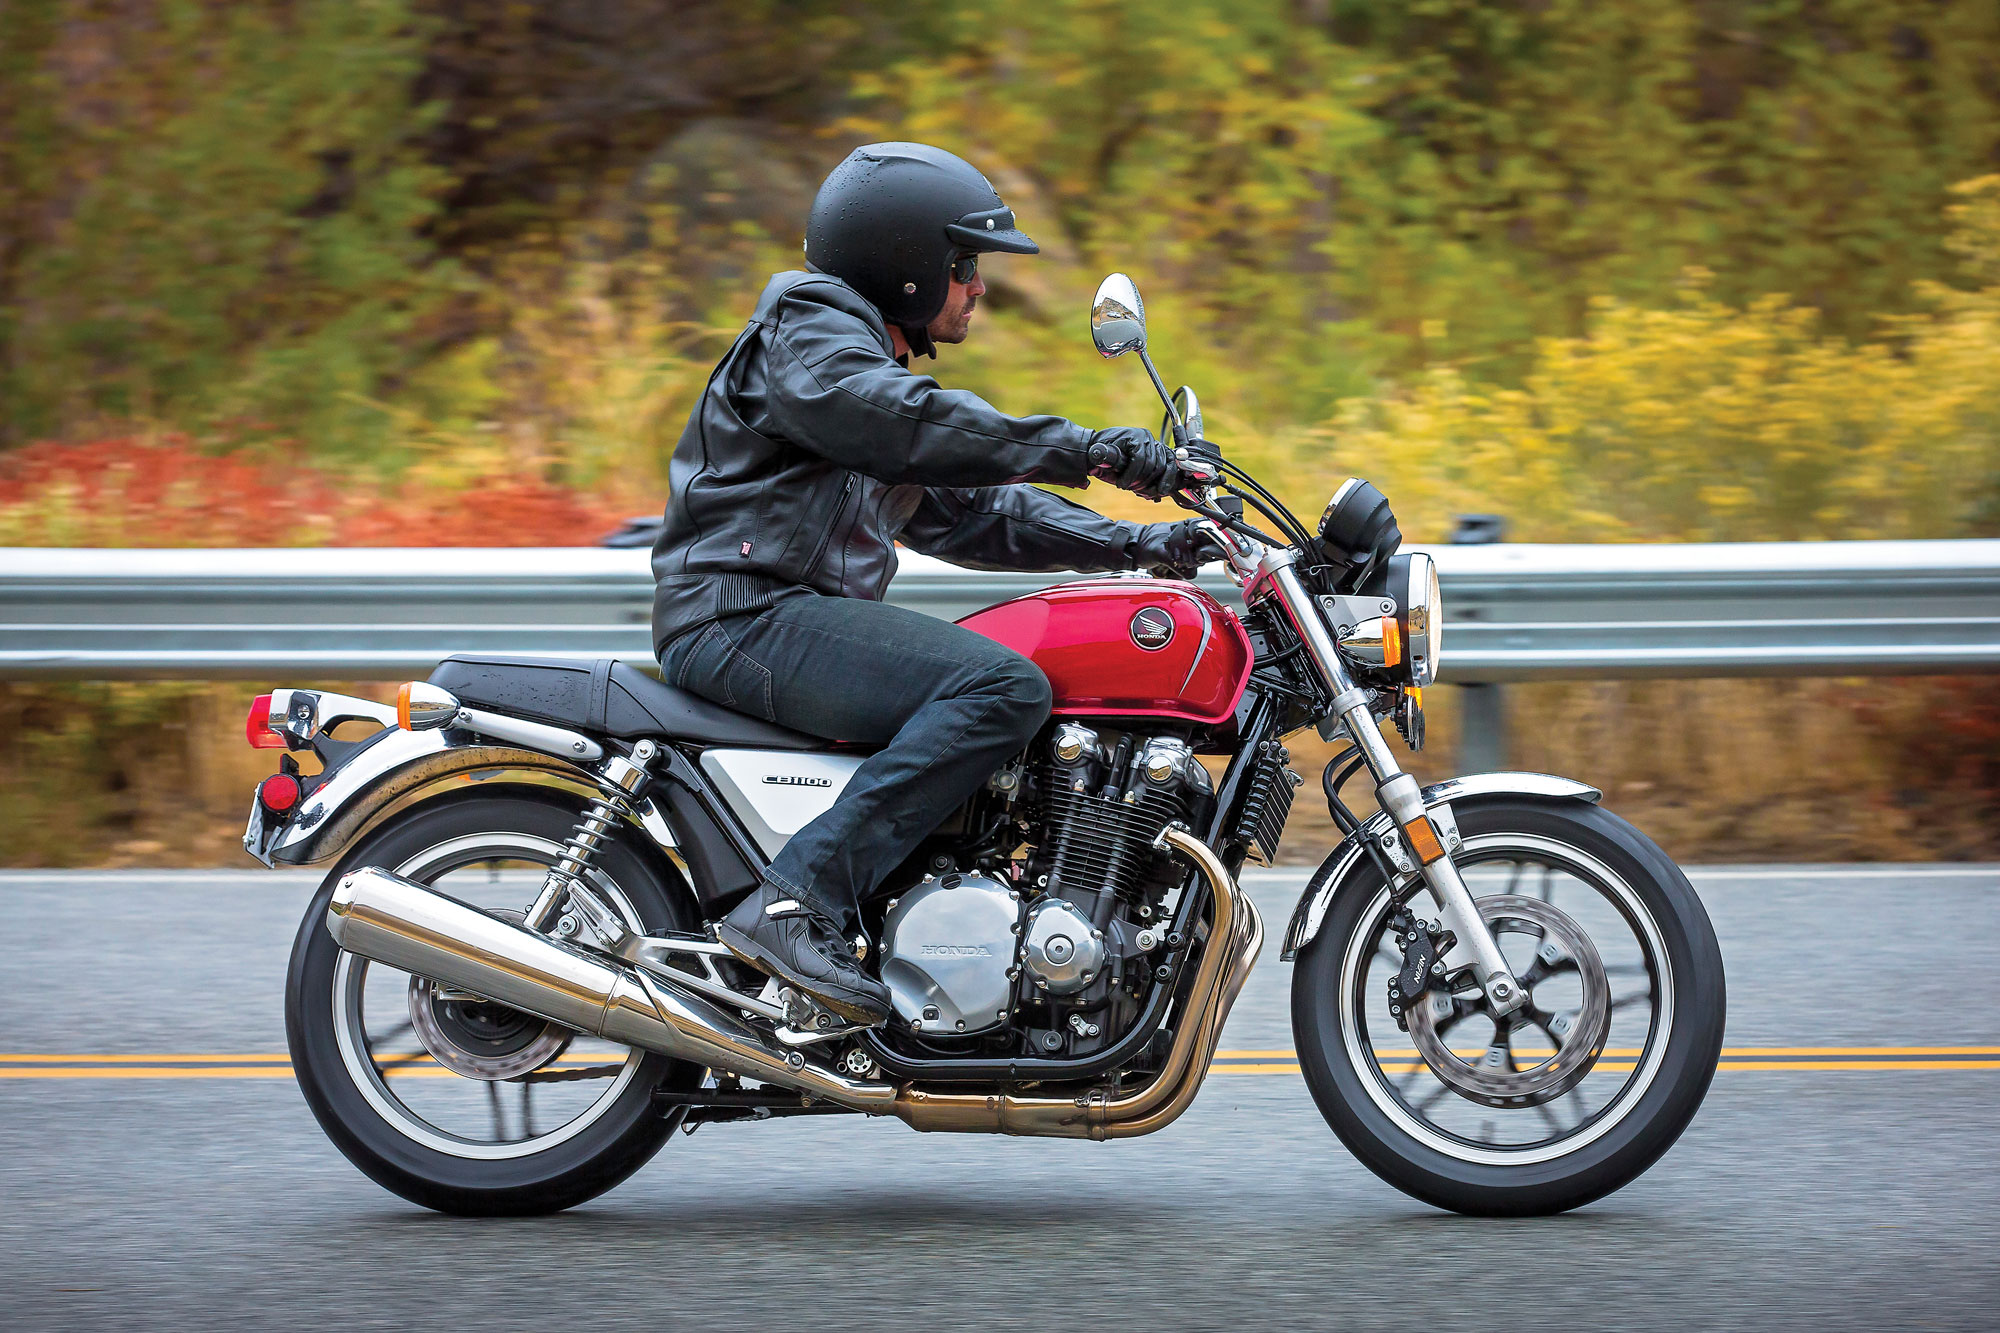 Honda Motorcycles Calgary >> 2013 Honda CB1100 ABS Review